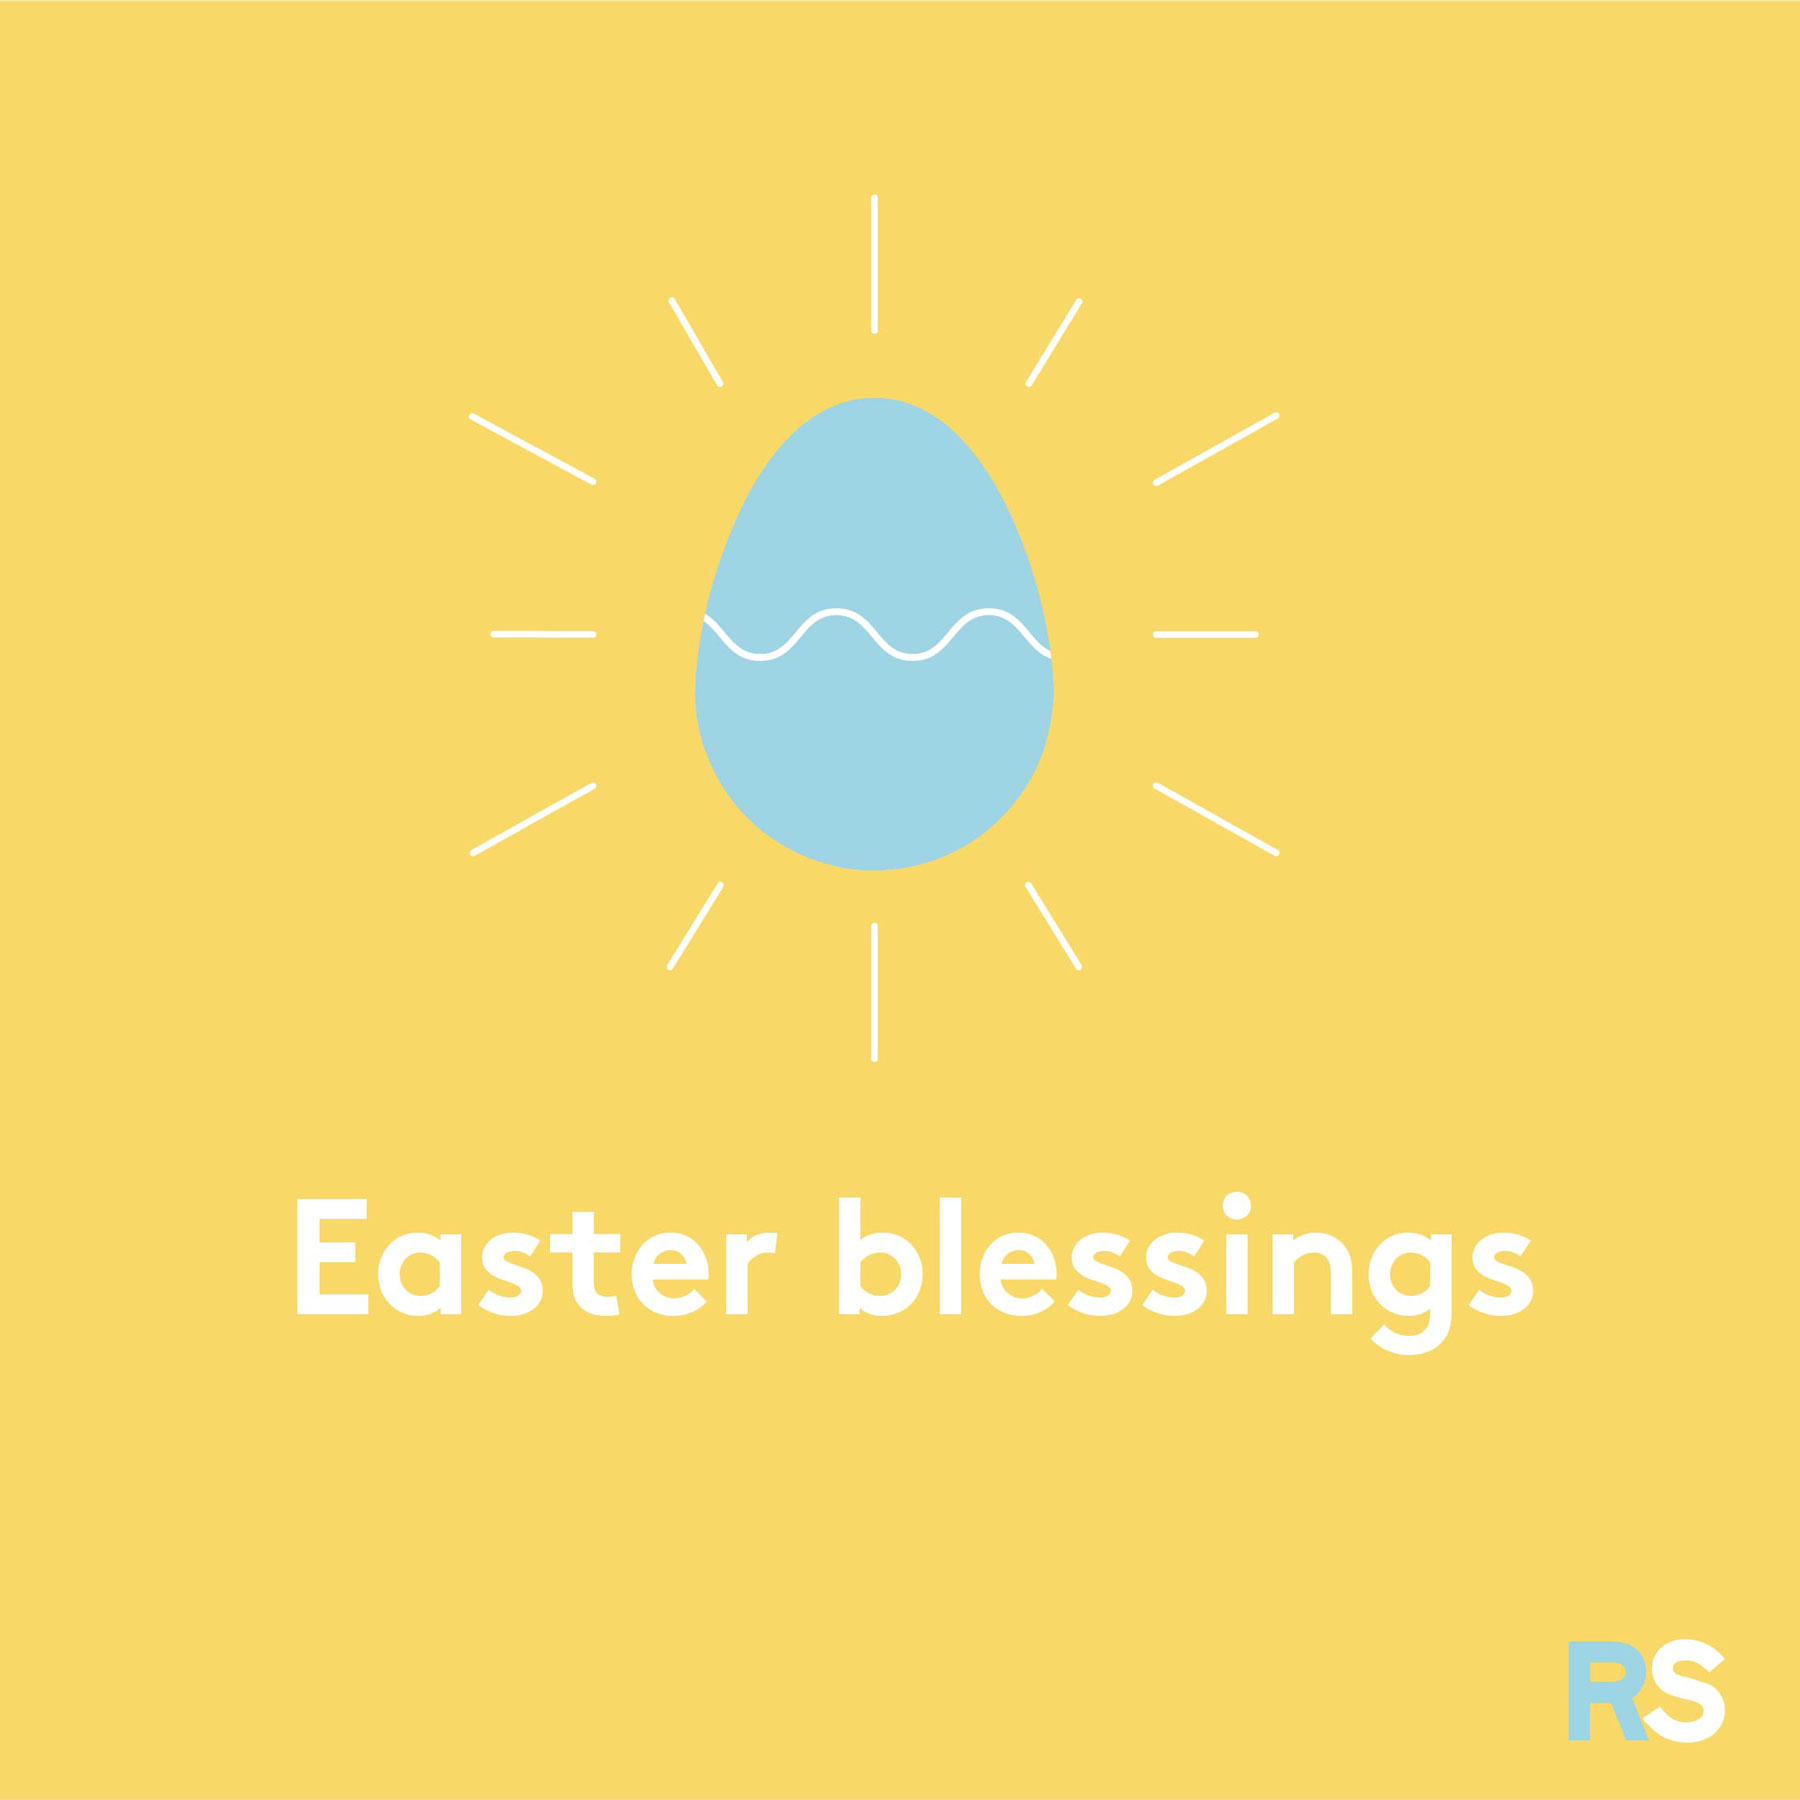 Easter quotes, captions, and messages - Easter blessings